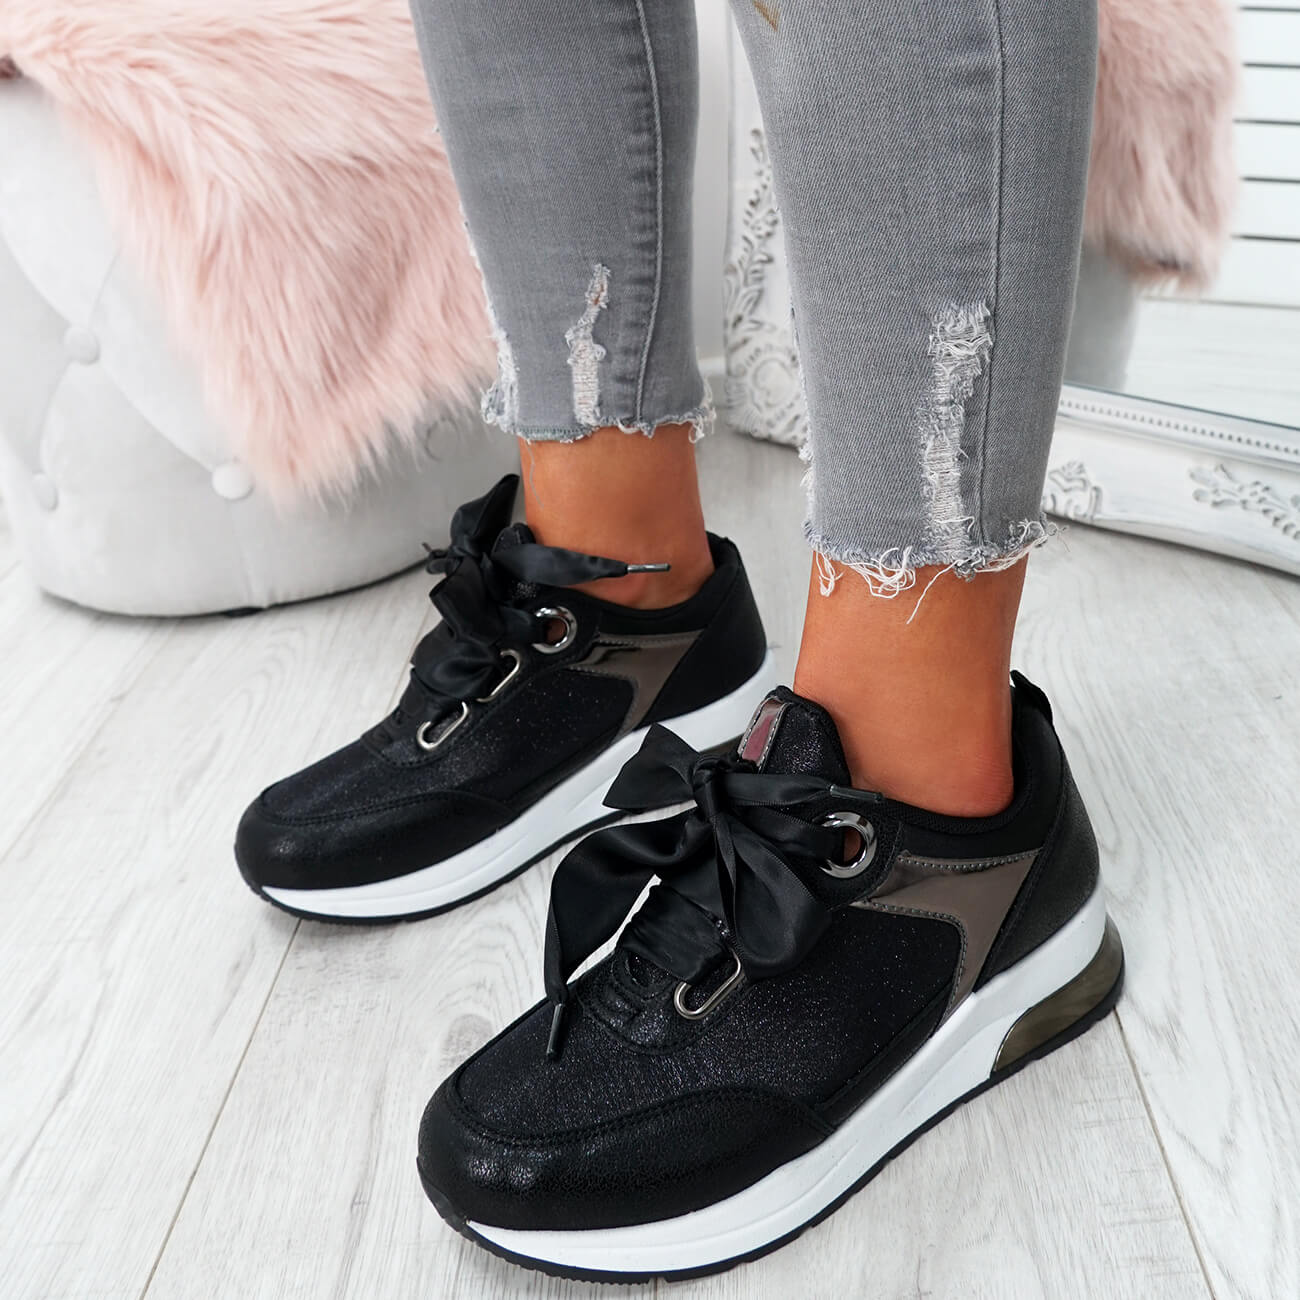 WOMENS-LADIES-RIBBON-TRAINERS-GLITTER-SPARKLE-SNEAKERS-RUNNING-FASHION-SHOES thumbnail 8